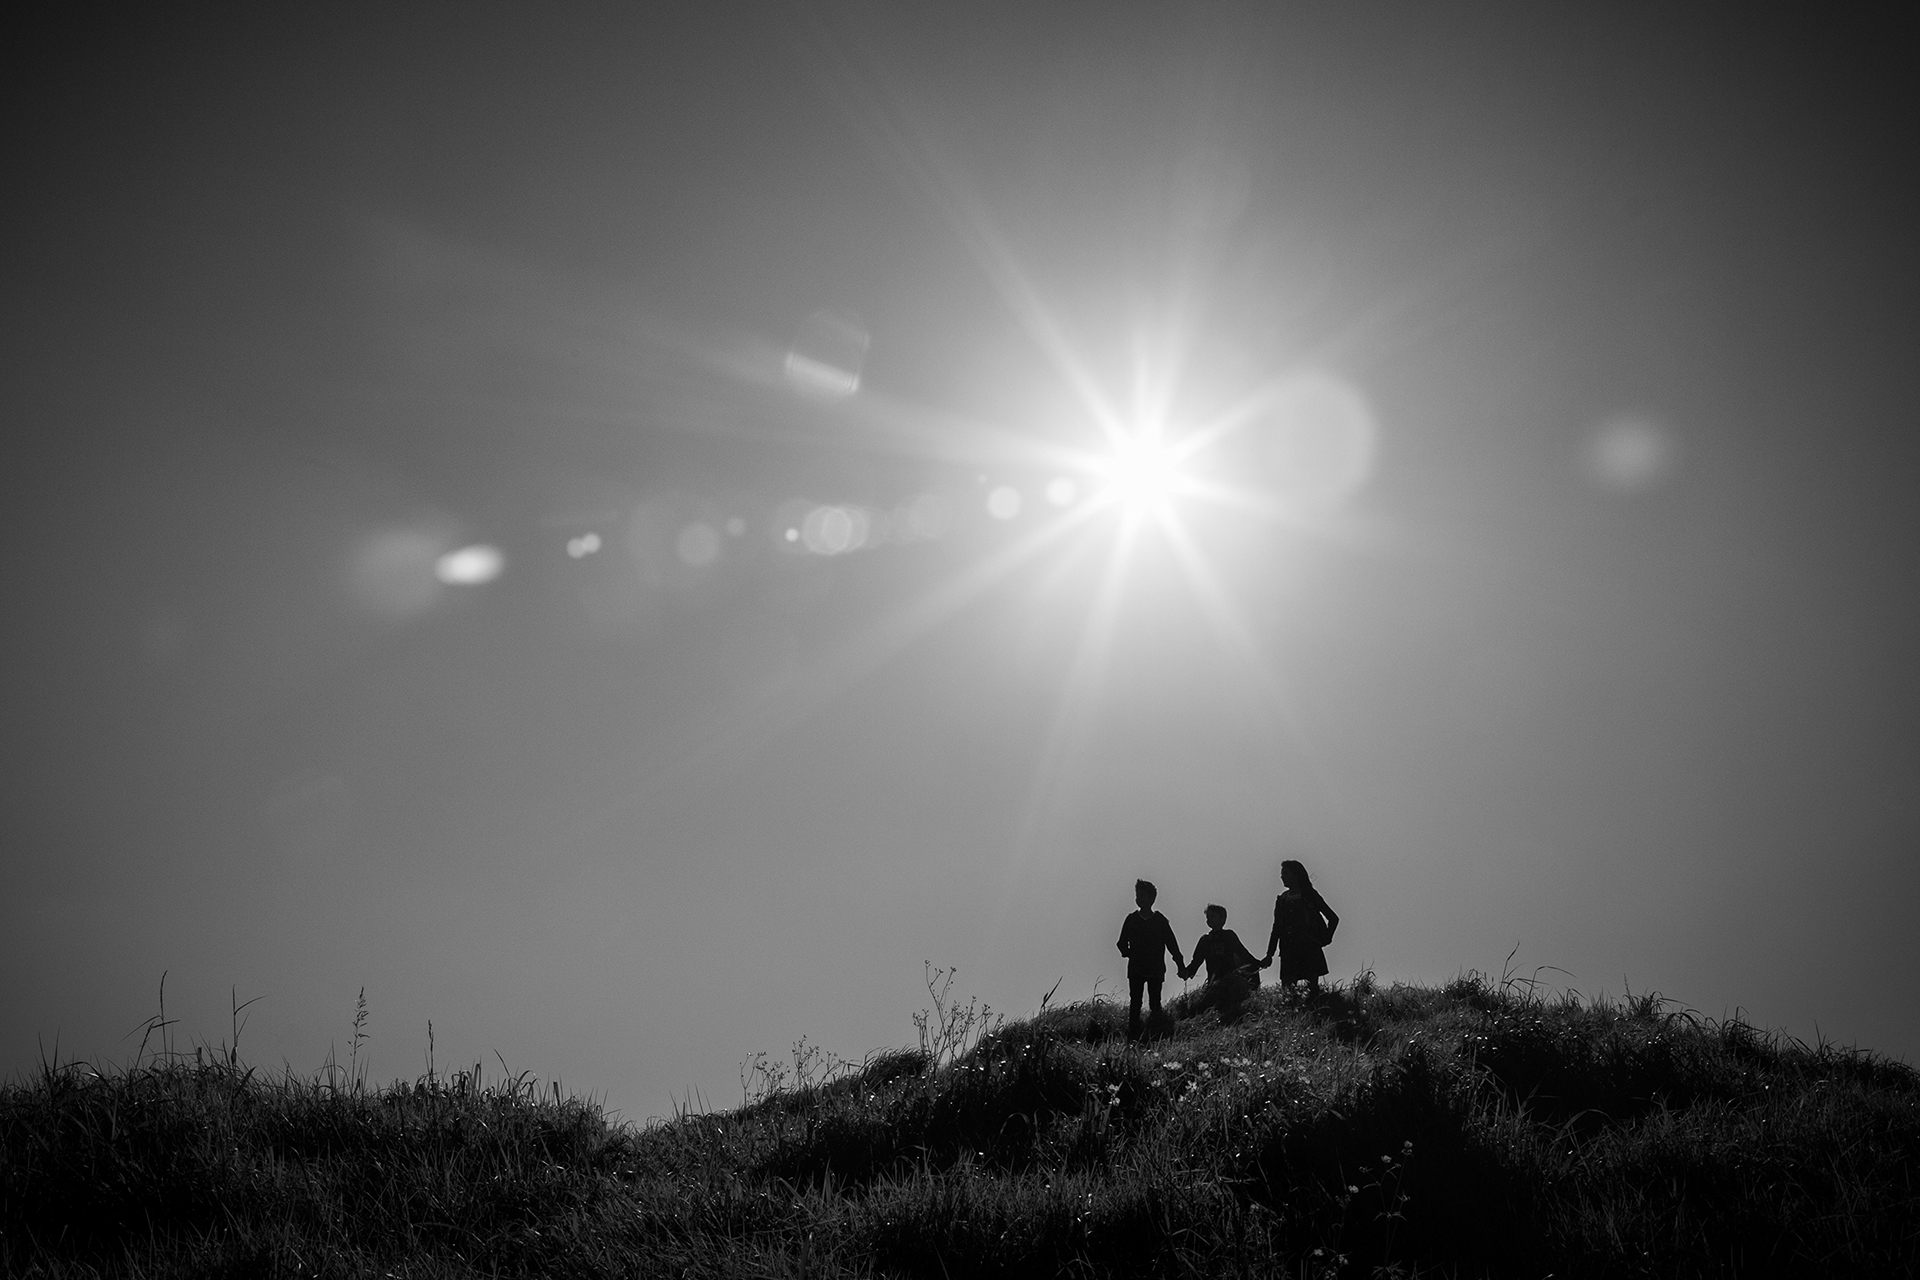 A silhouette of three children standing on a hill looking out together in the same direction. The children are holding hands so they look close and connected. The sun appears as a star burst with flare. This photo was taken by Mala Photography, and Auckland based family portrait photographer.